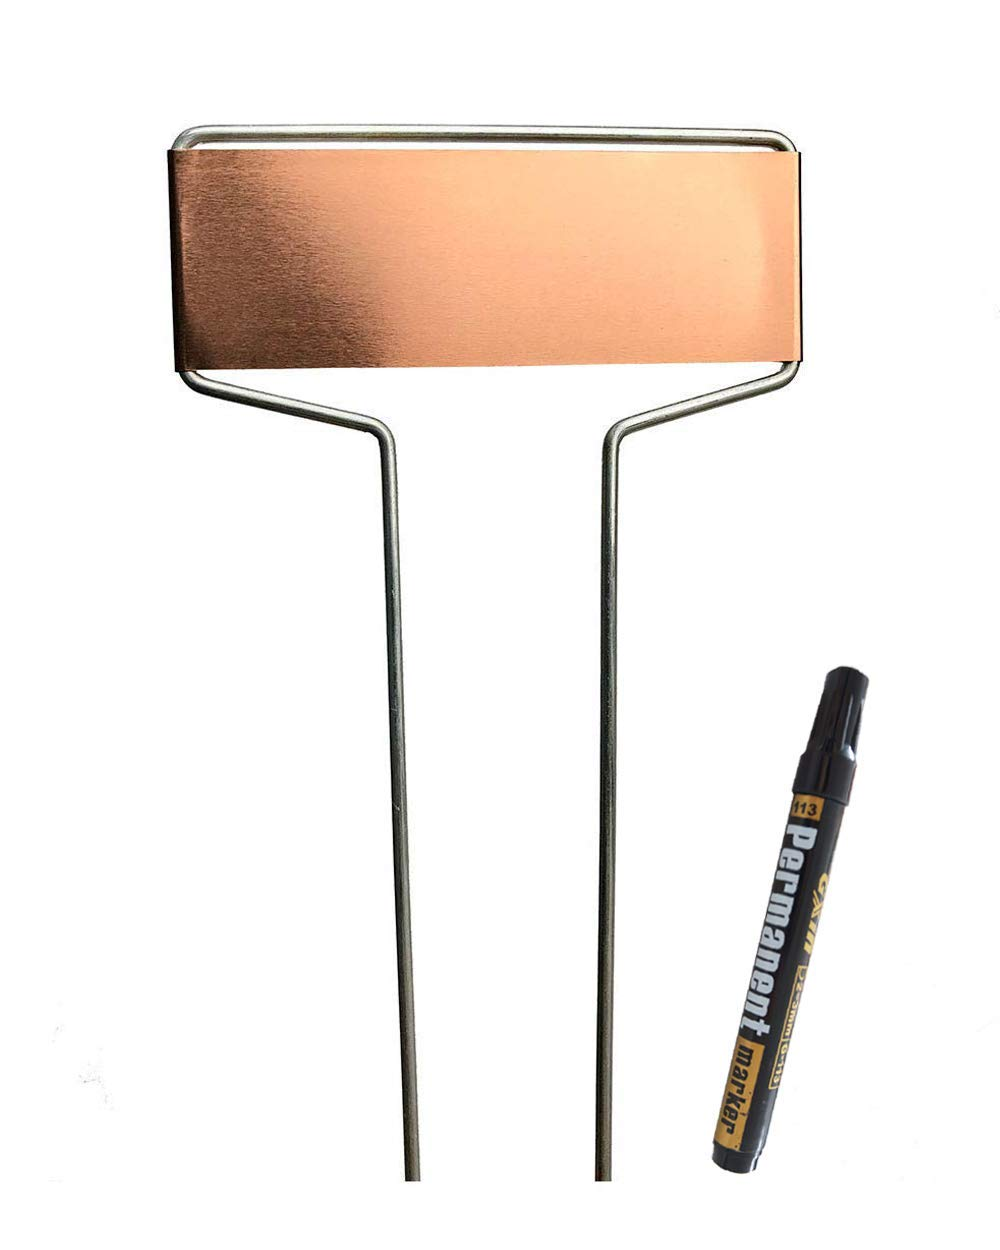 Copper Garden Labels Plant Markers Nursery Tags Reusable Planting Gardening Sticks for Vegetable Herb Flower Pack of 15,with 1 Marker Pen